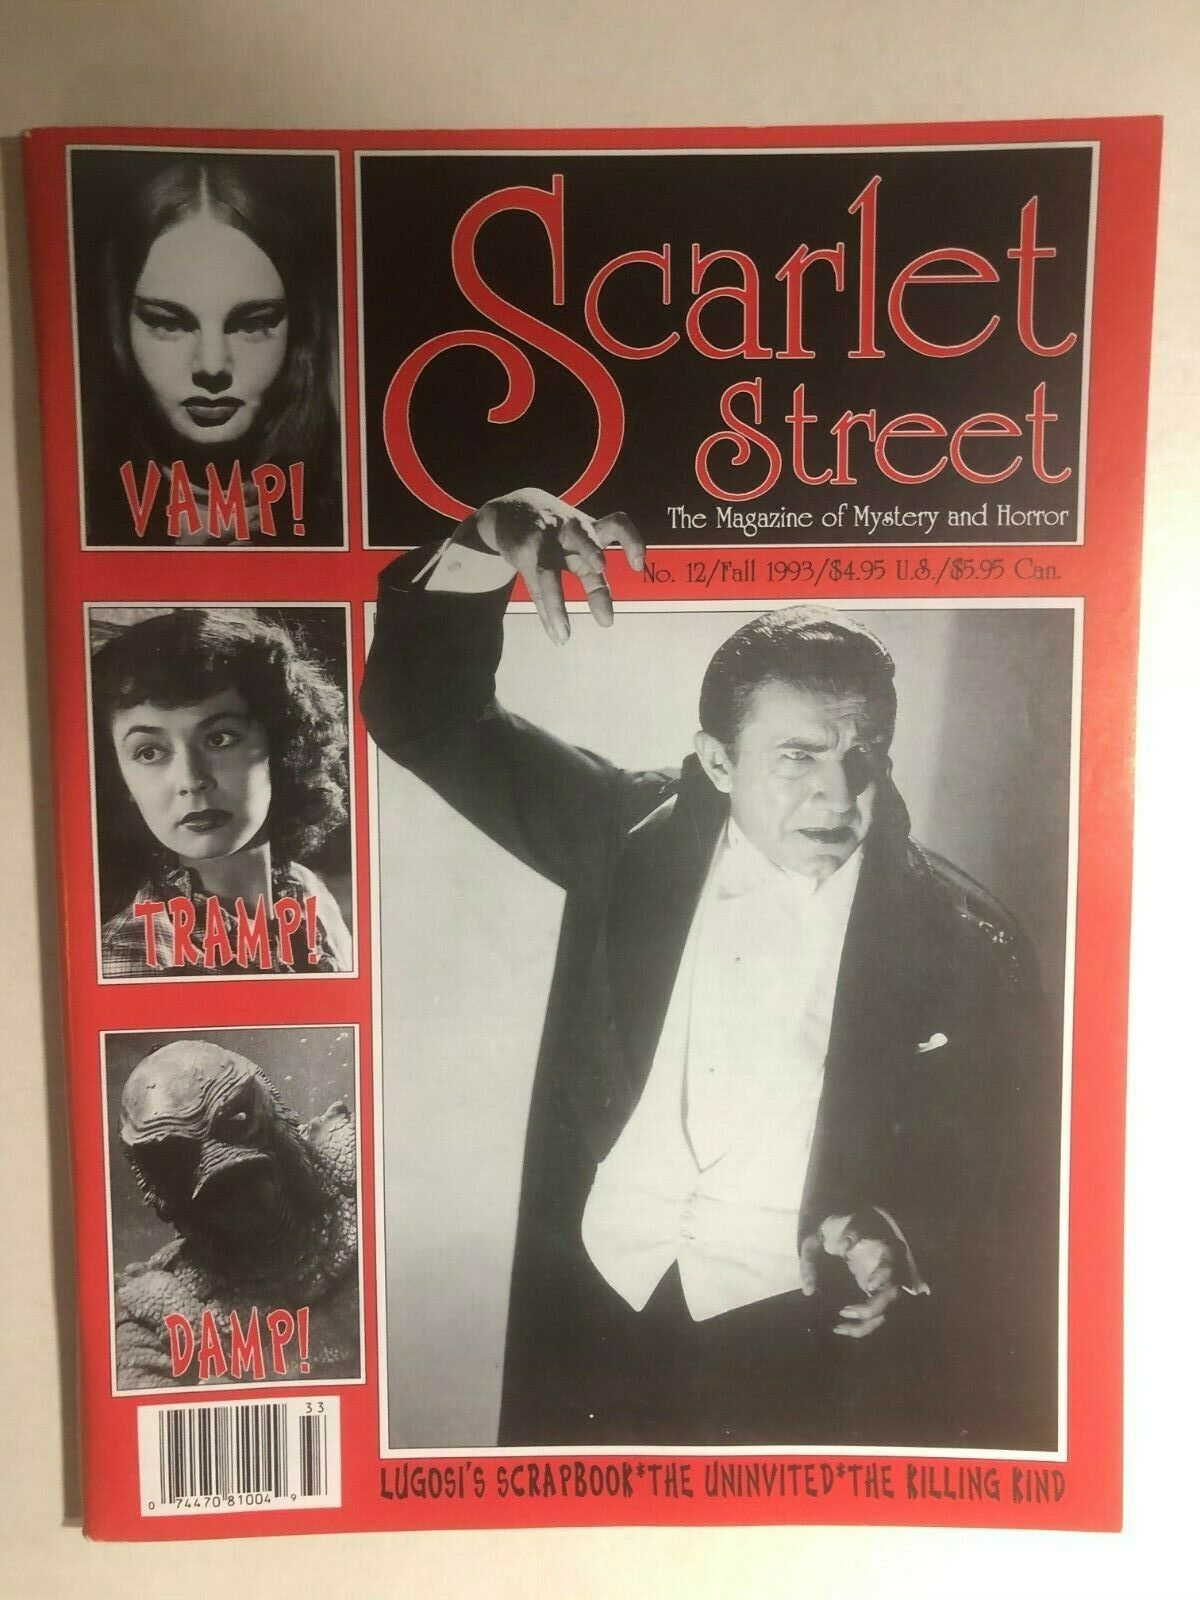 Primary image for SCARLET STREET #12 (1993) horror magazine VERY FINE